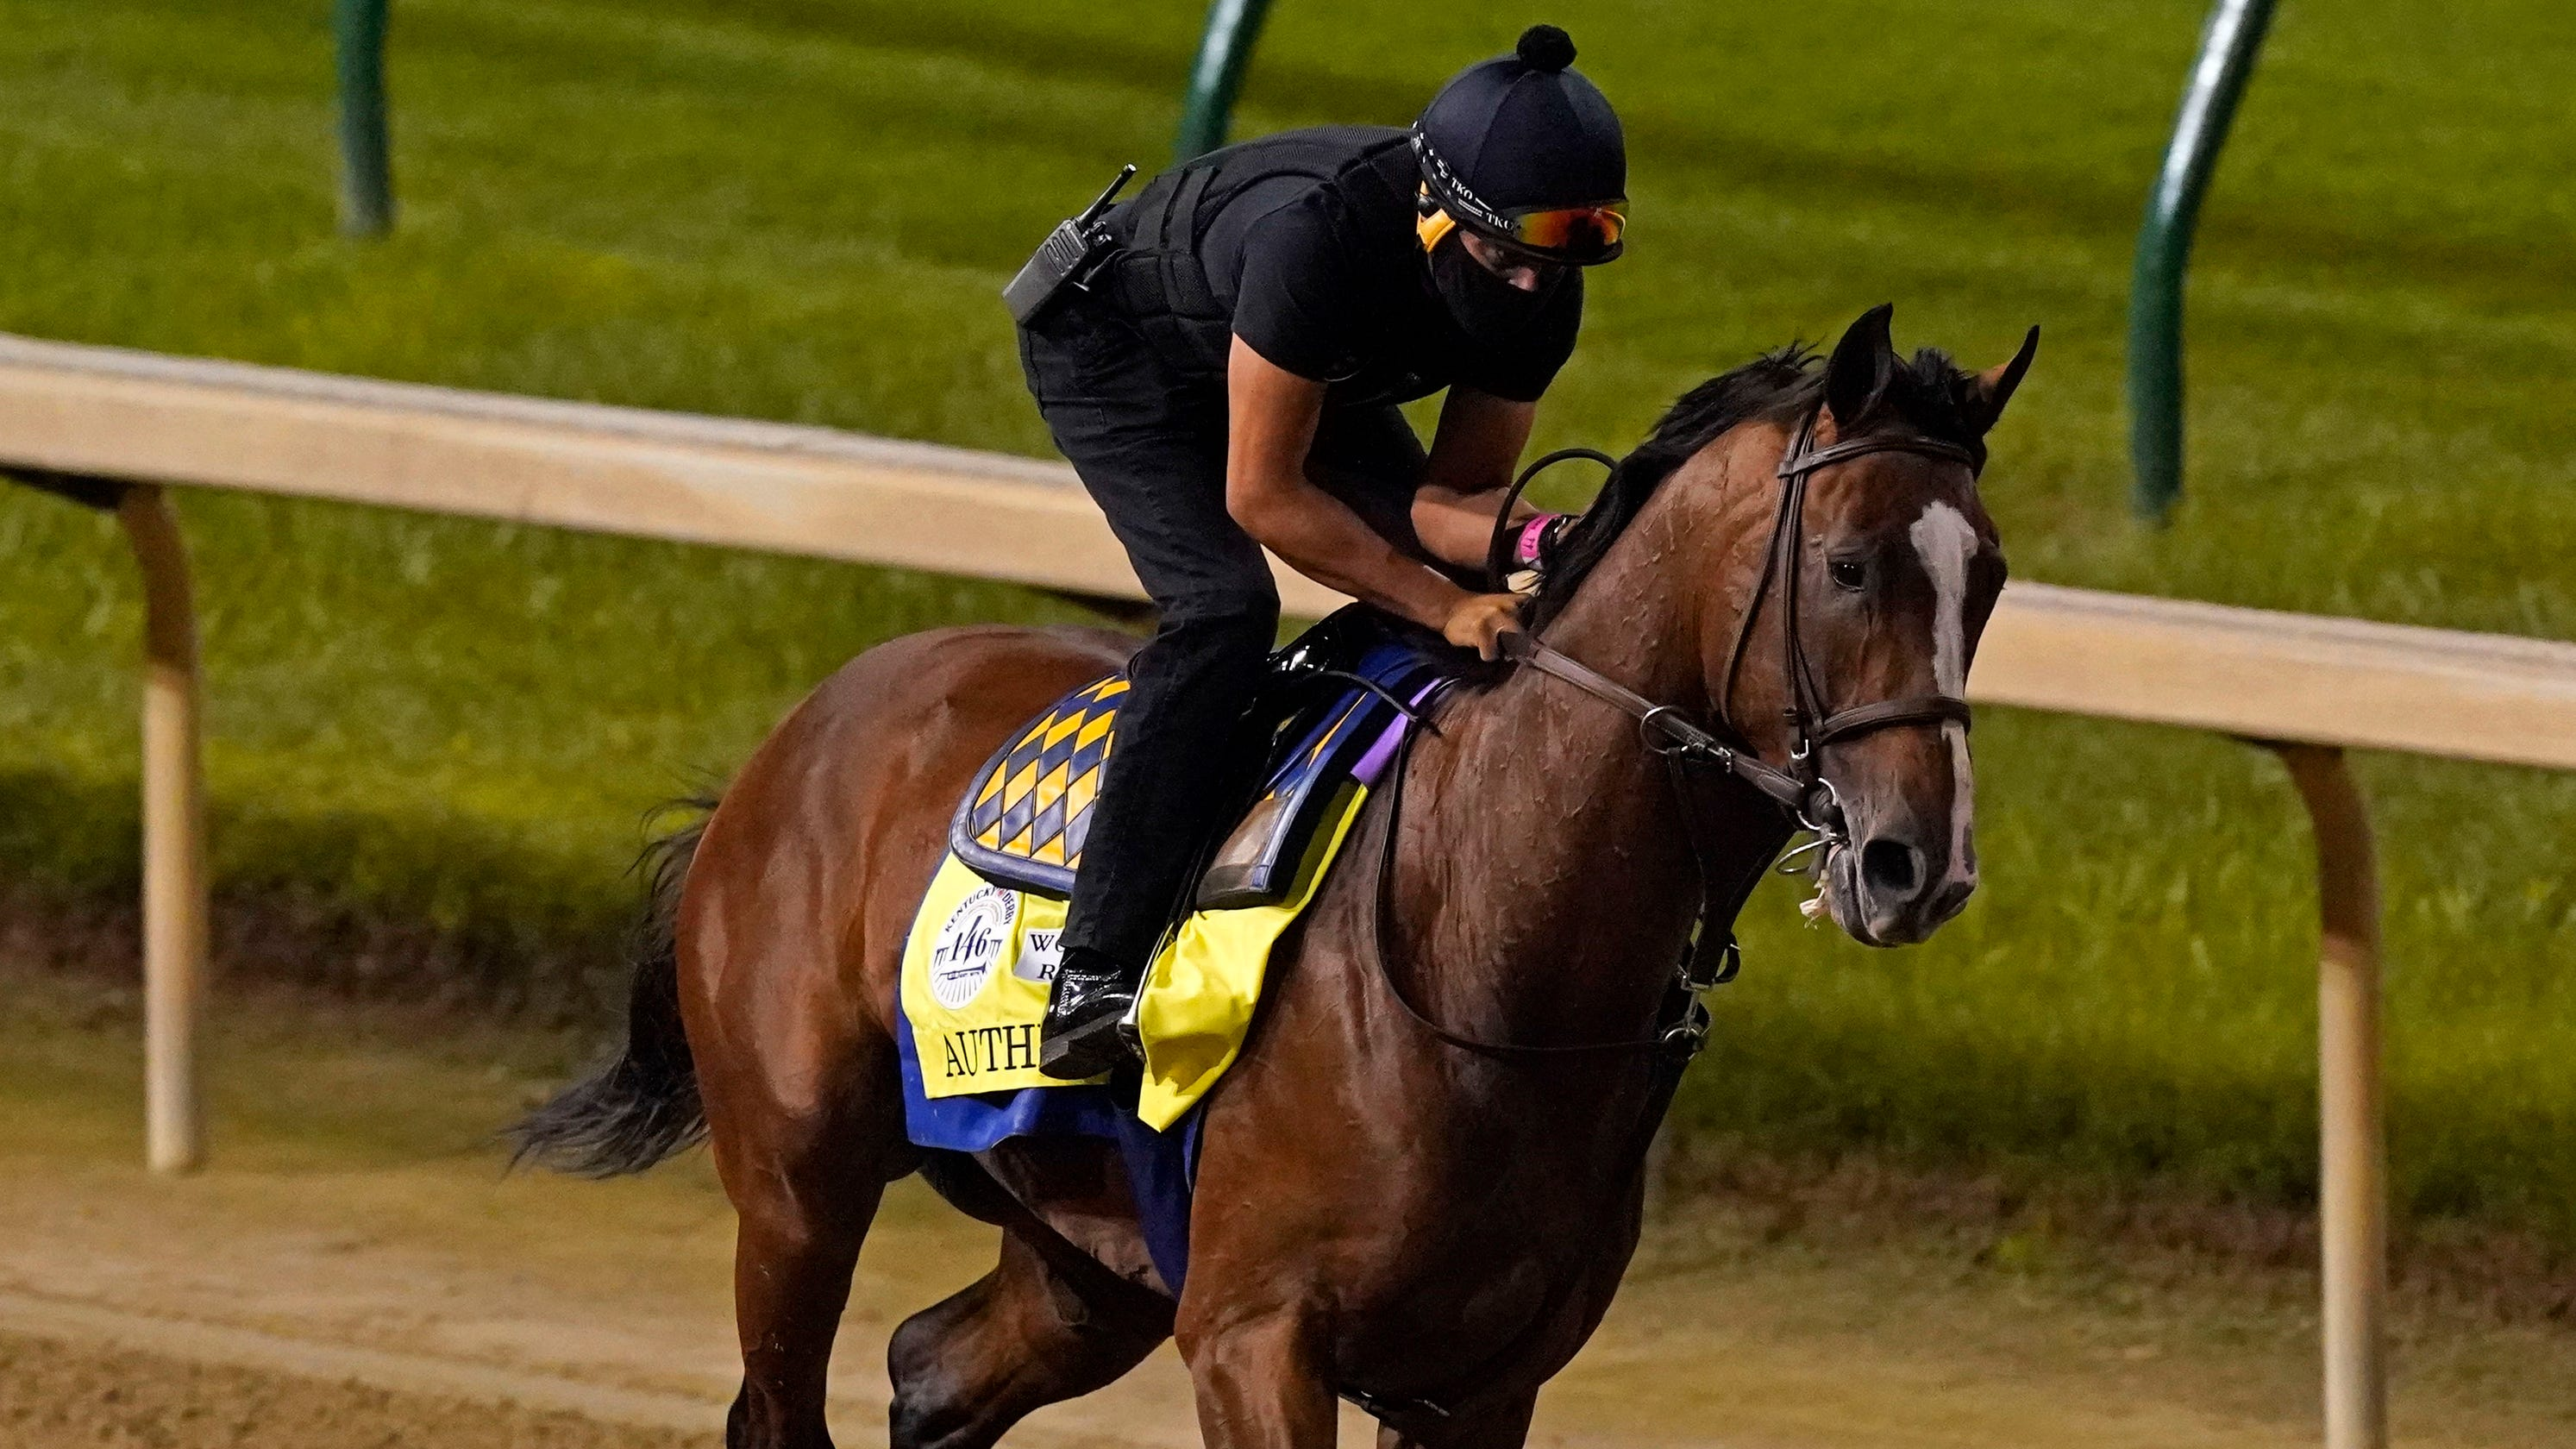 Authentic wins the 146th Kentucky Derby ahead of favorite Tiz the Law